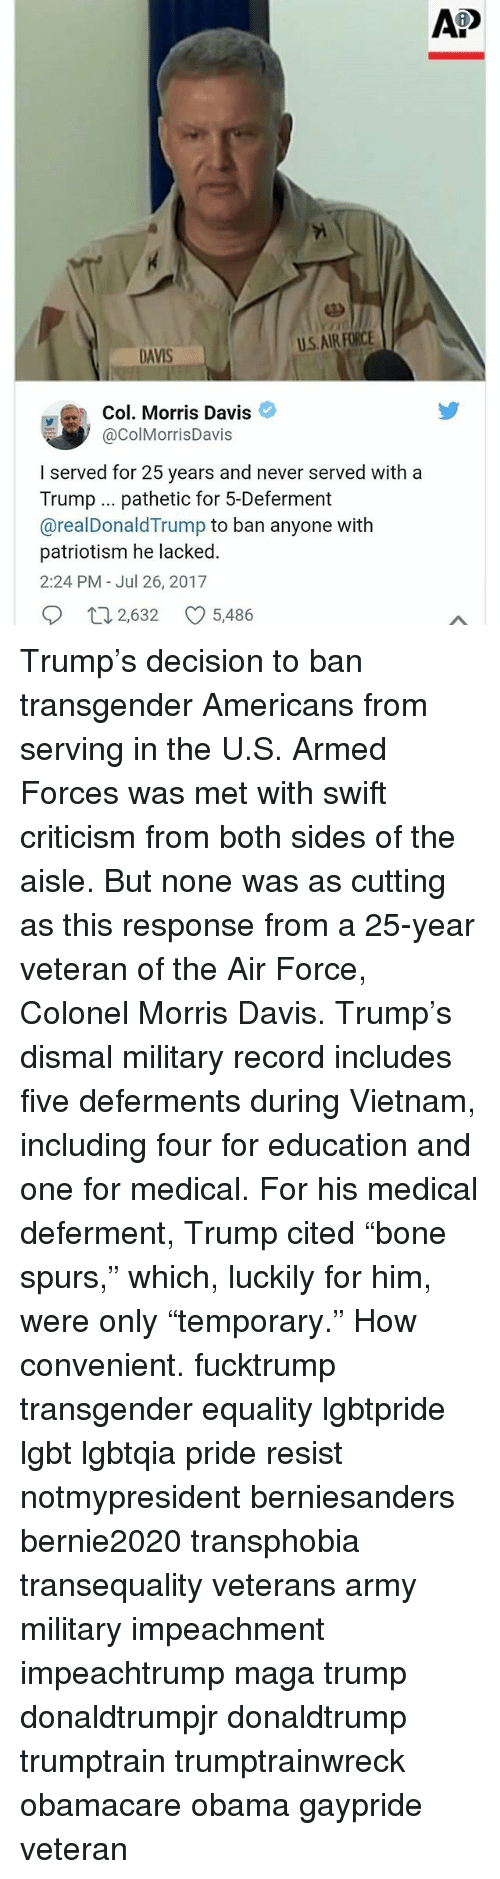 "Lgbt, Memes, and Obama: Ap  U.S.AIR FORCE  DAVIS  Col. Morris Davis  @ColMorrisDavis  I served for 25 years and never served with a  Trump pathetic for 5-Deferment  @realDonaldTrump to ban anyone with  patriotism he lacked.  2:24 PM - Jul 26, 2017  2,632 CO 5,486 Trump's decision to ban transgender Americans from serving in the U.S. Armed Forces was met with swift criticism from both sides of the aisle. But none was as cutting as this response from a 25-year veteran of the Air Force, Colonel Morris Davis. Trump's dismal military record includes five deferments during Vietnam, including four for education and one for medical. For his medical deferment, Trump cited ""bone spurs,"" which, luckily for him, were only ""temporary."" How convenient. fucktrump transgender equality lgbtpride lgbt lgbtqia pride resist notmypresident berniesanders bernie2020 transphobia transequality veterans army military impeachment impeachtrump maga trump donaldtrumpjr donaldtrump trumptrain trumptrainwreck obamacare obama gaypride veteran"